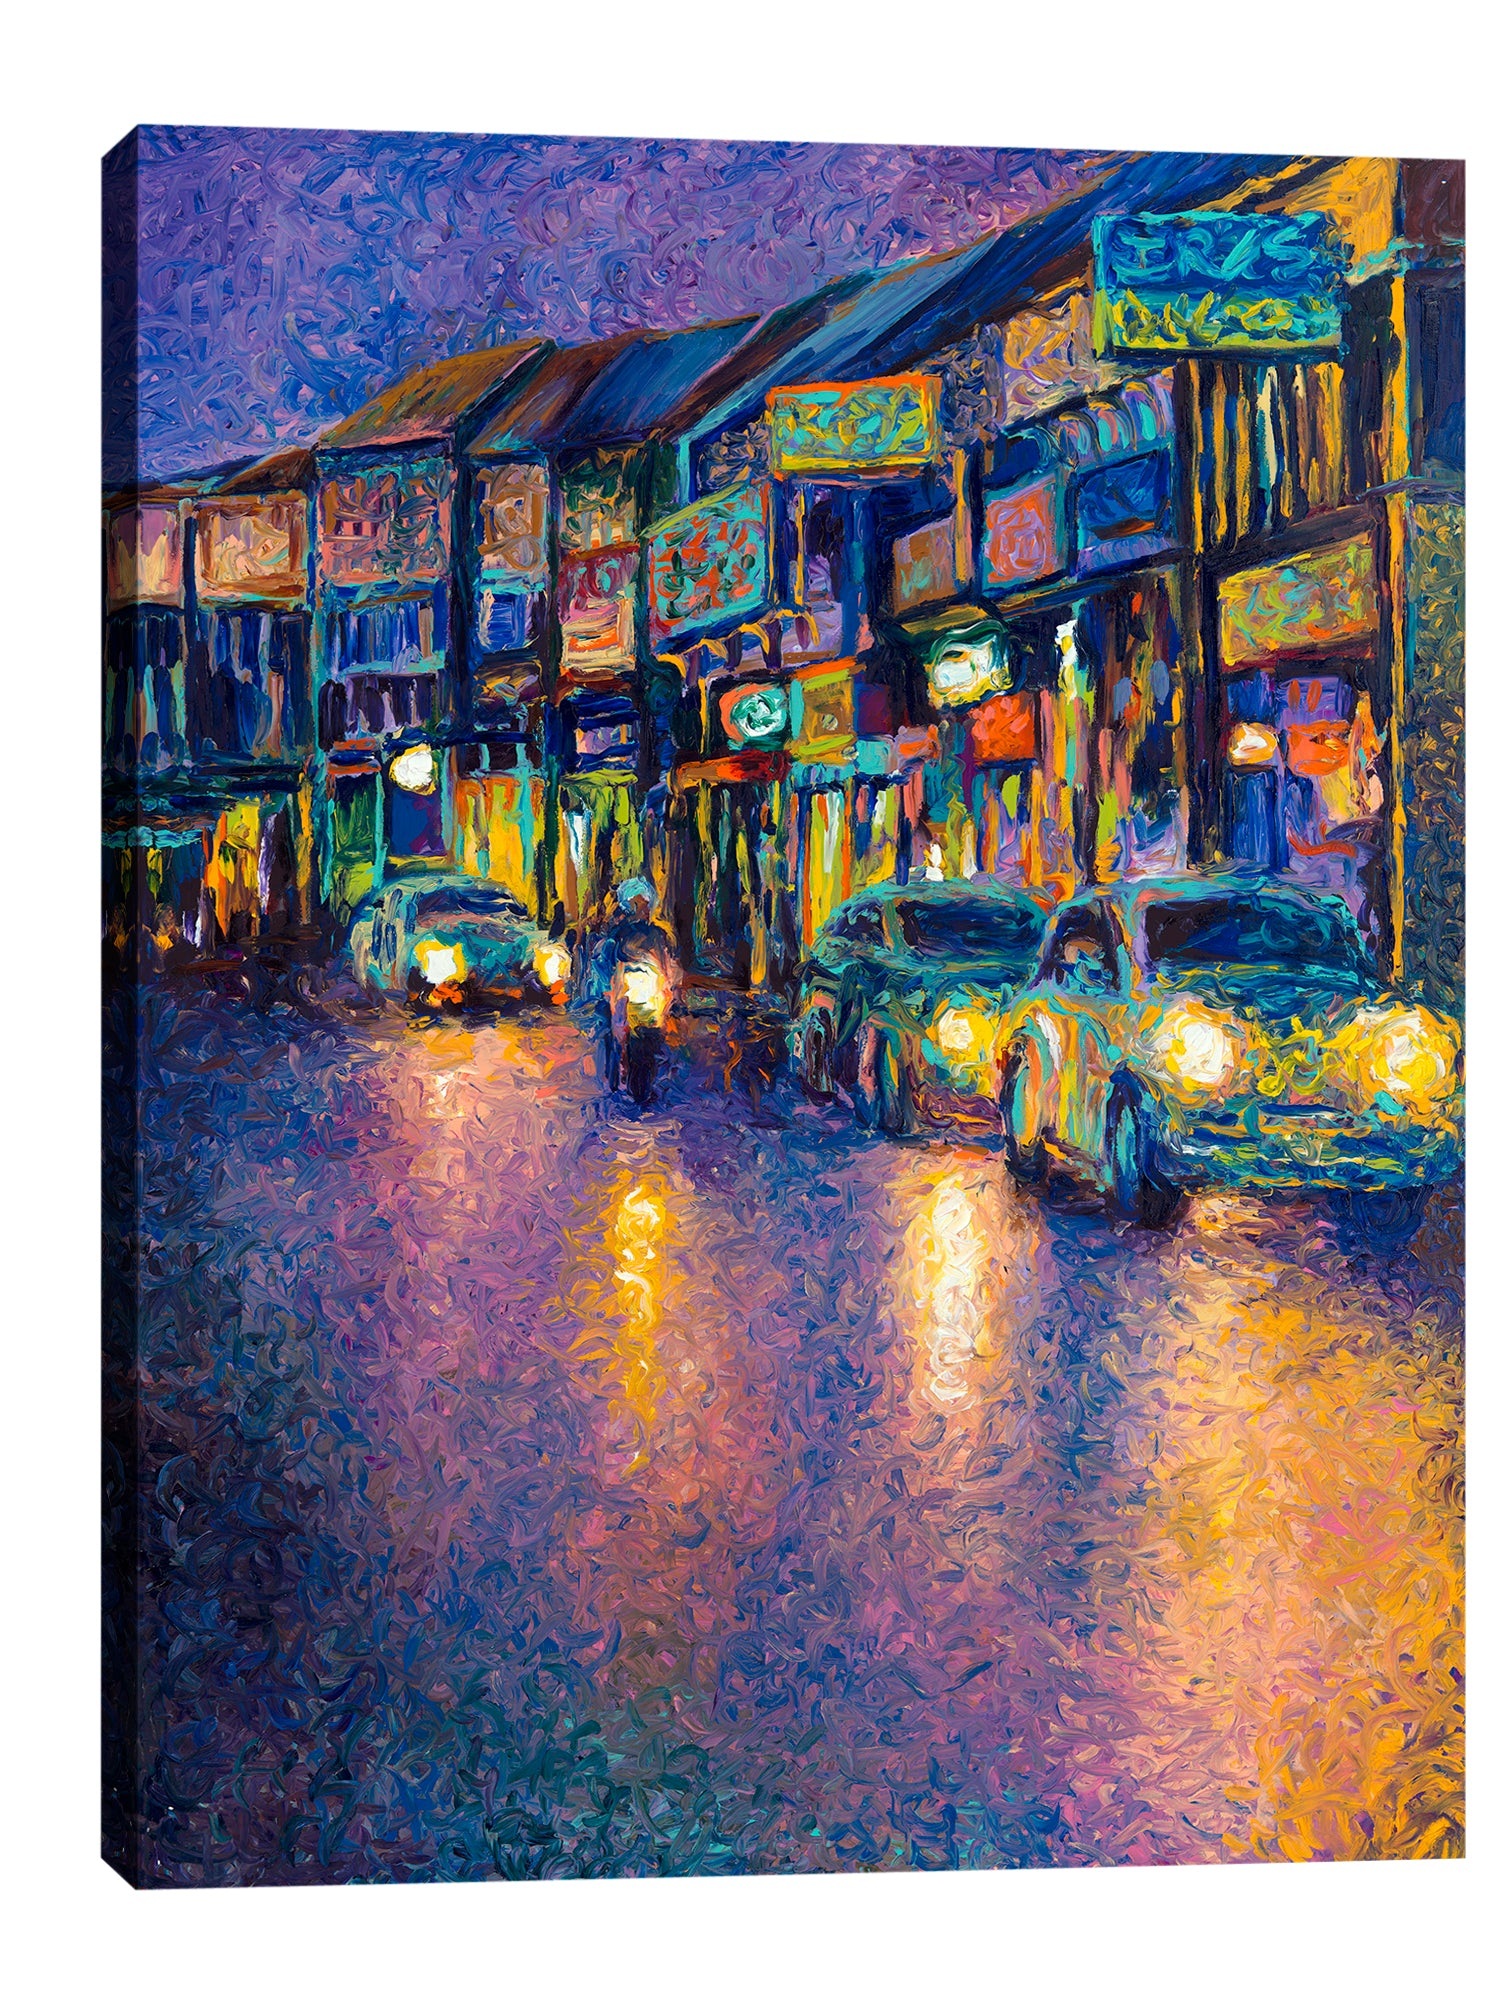 Iris-Scott,Modern & Contemporary,Buildings & Cityscapes,cars,lights,motors,buildings,streets,roads,